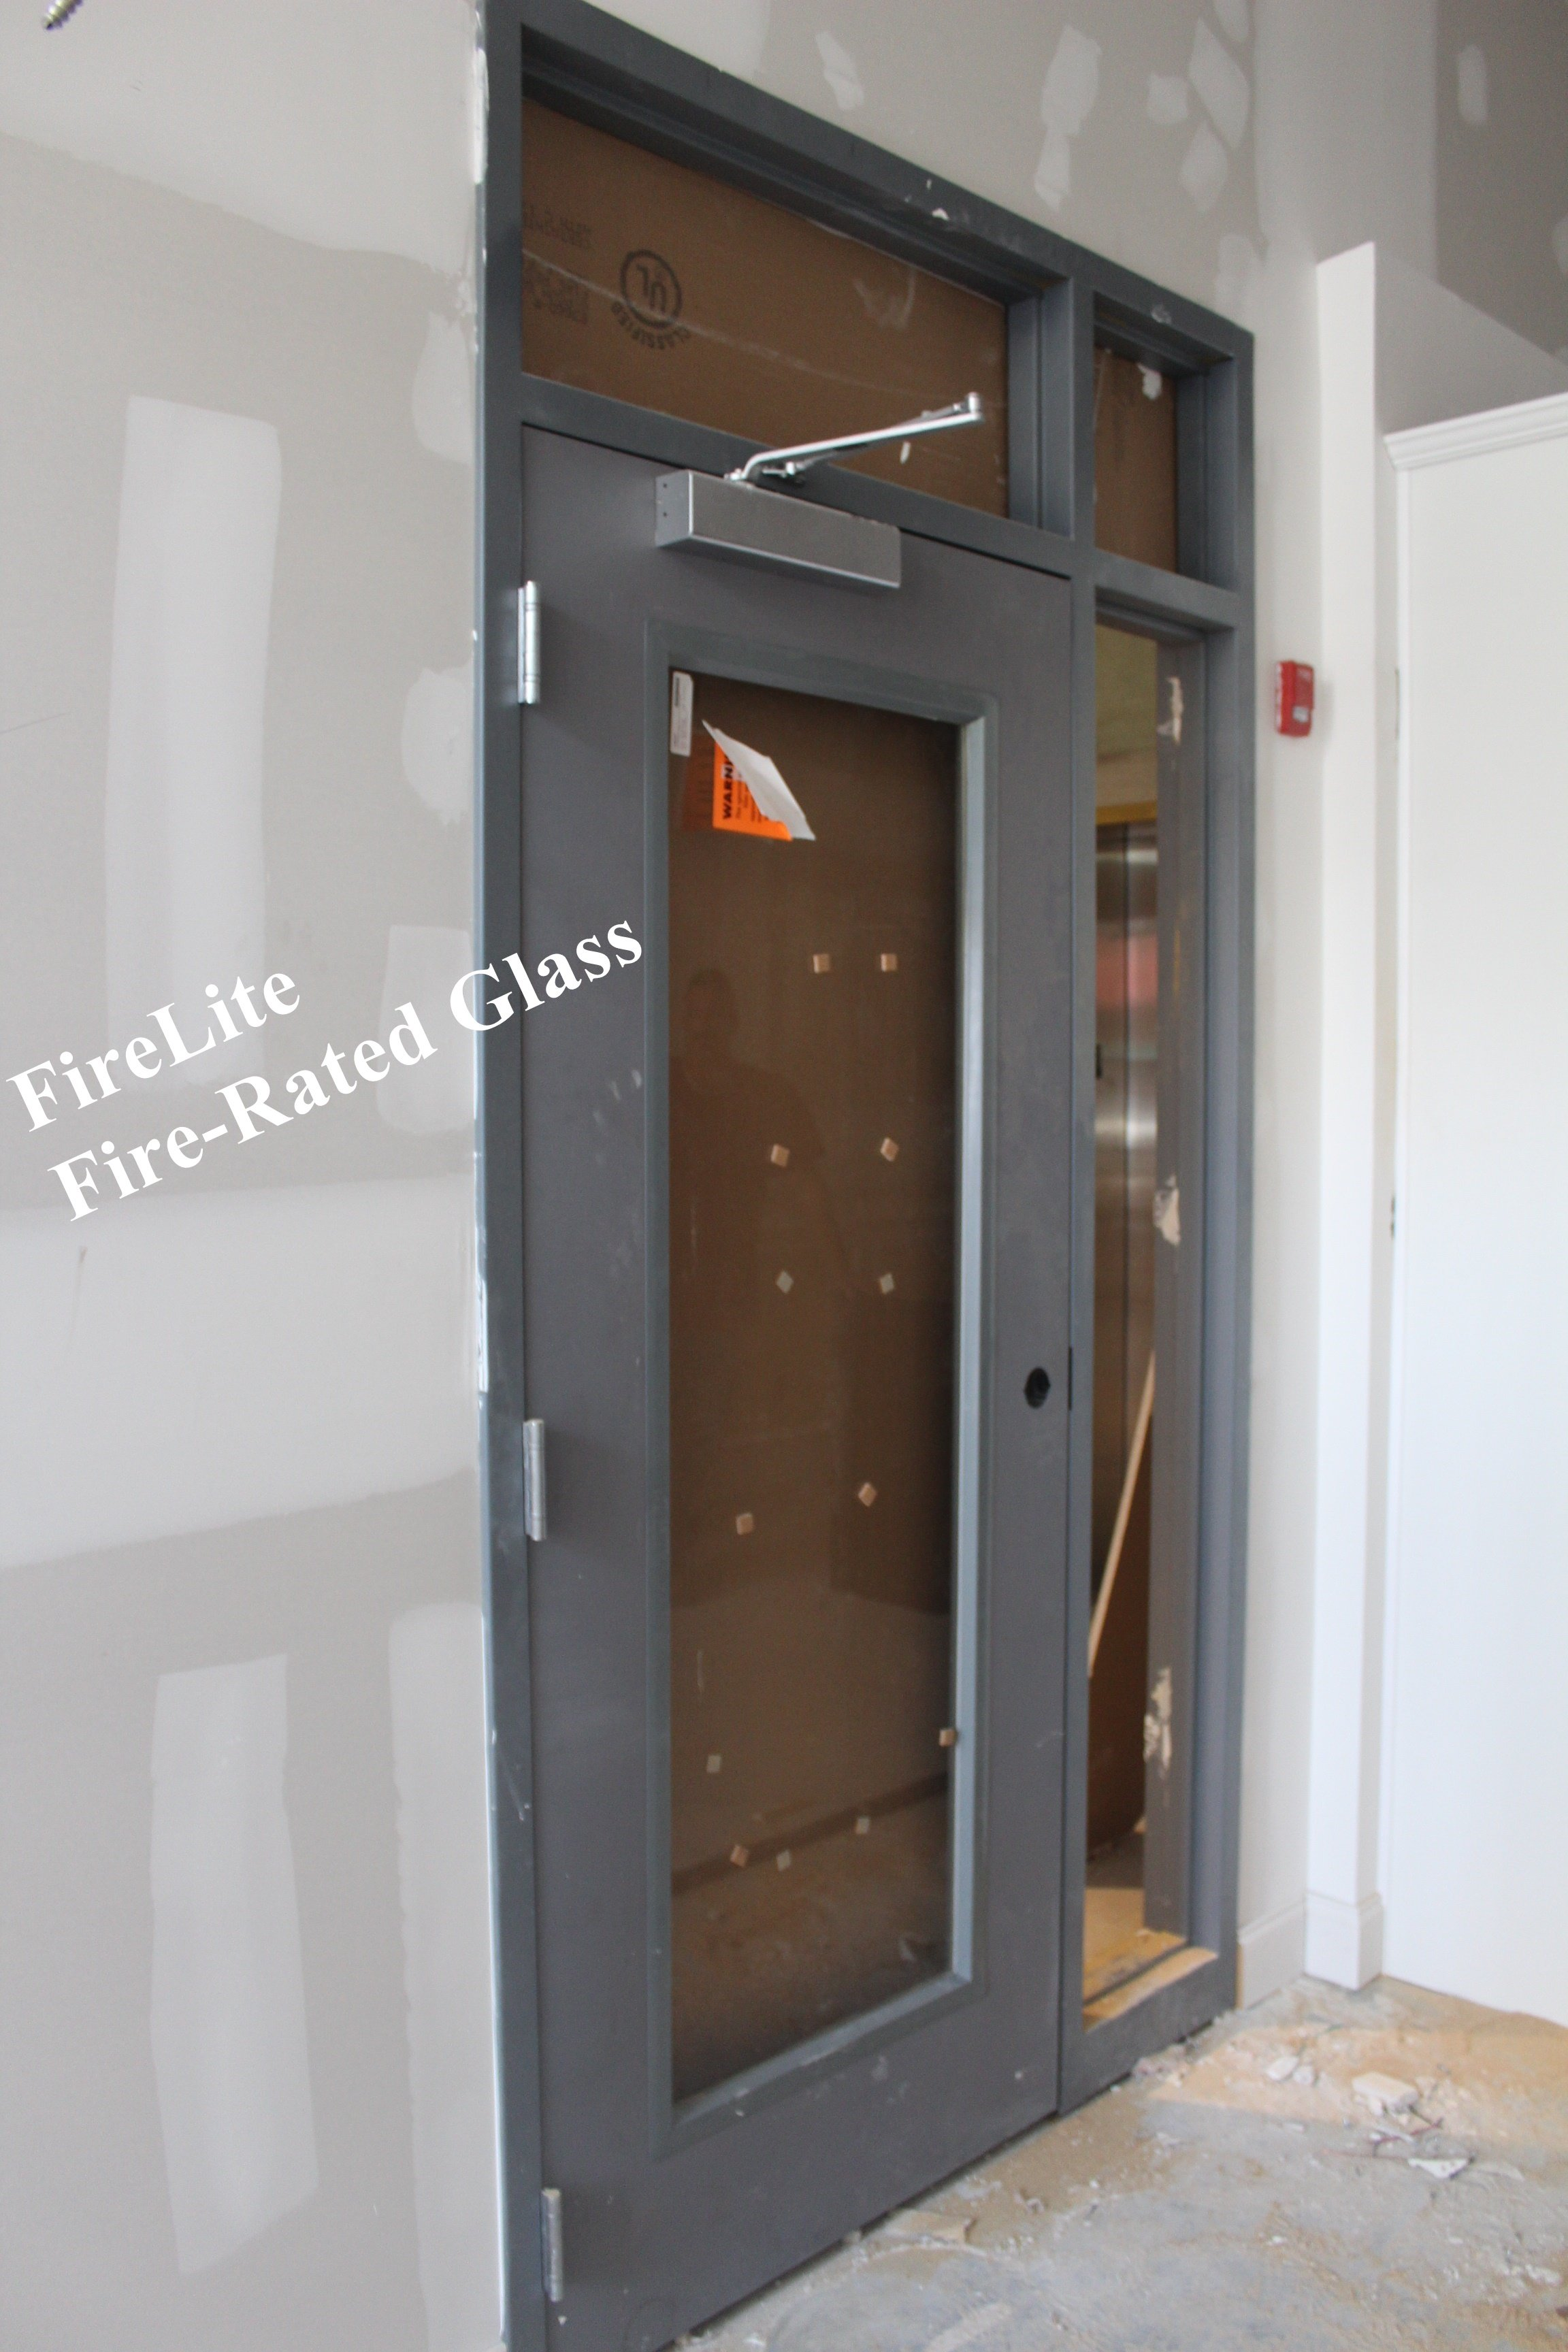 FireLite Fire-Rated Glass